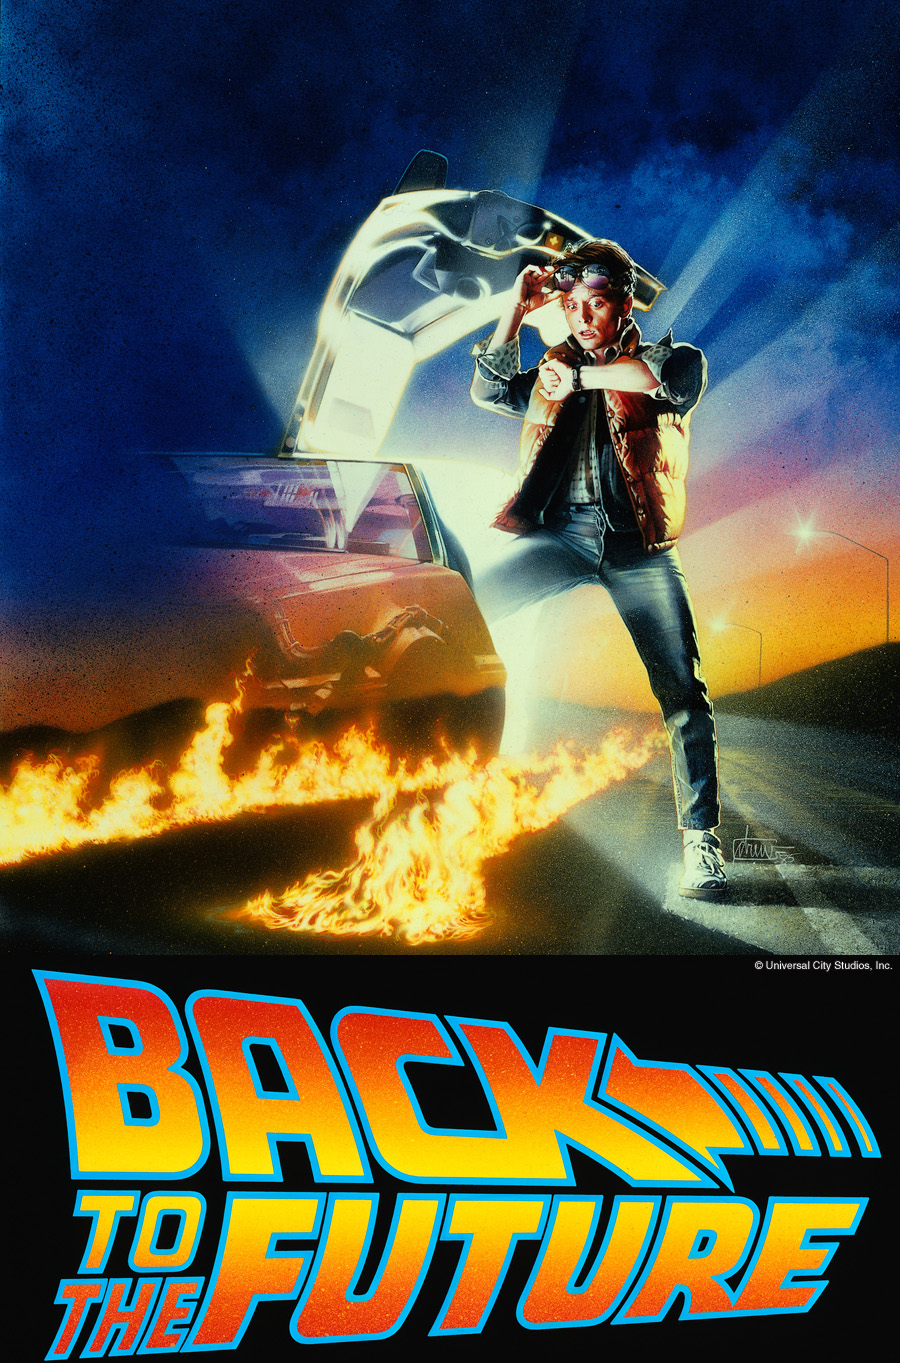 back_to_the_future_poster_01_1.jpg